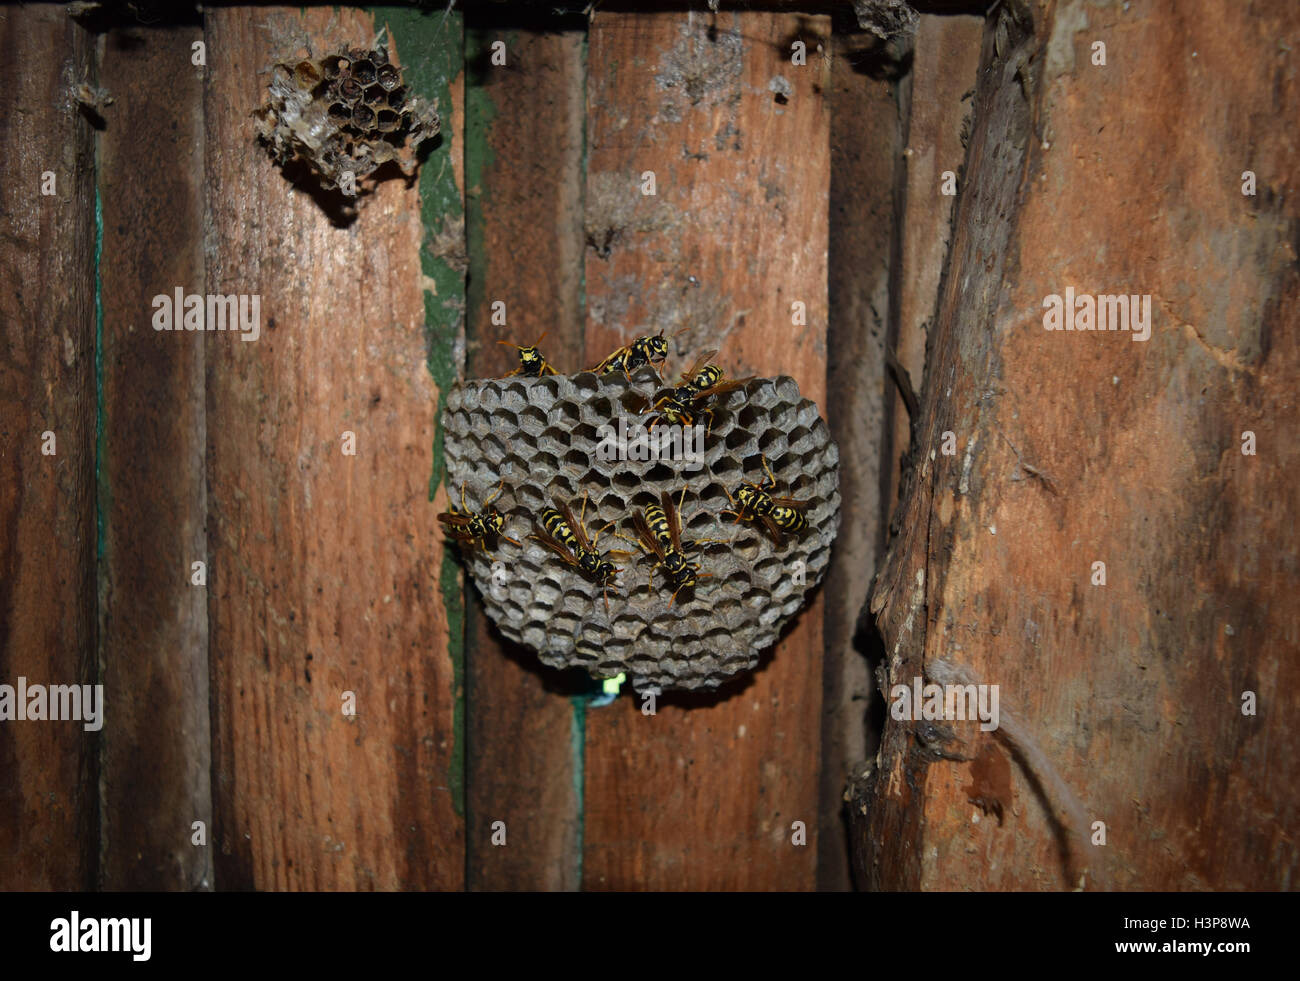 Wasp nest with wasps sitting on it. Wasps polist. The nest of a family of wasps which is taken a close-up. Stock Photo